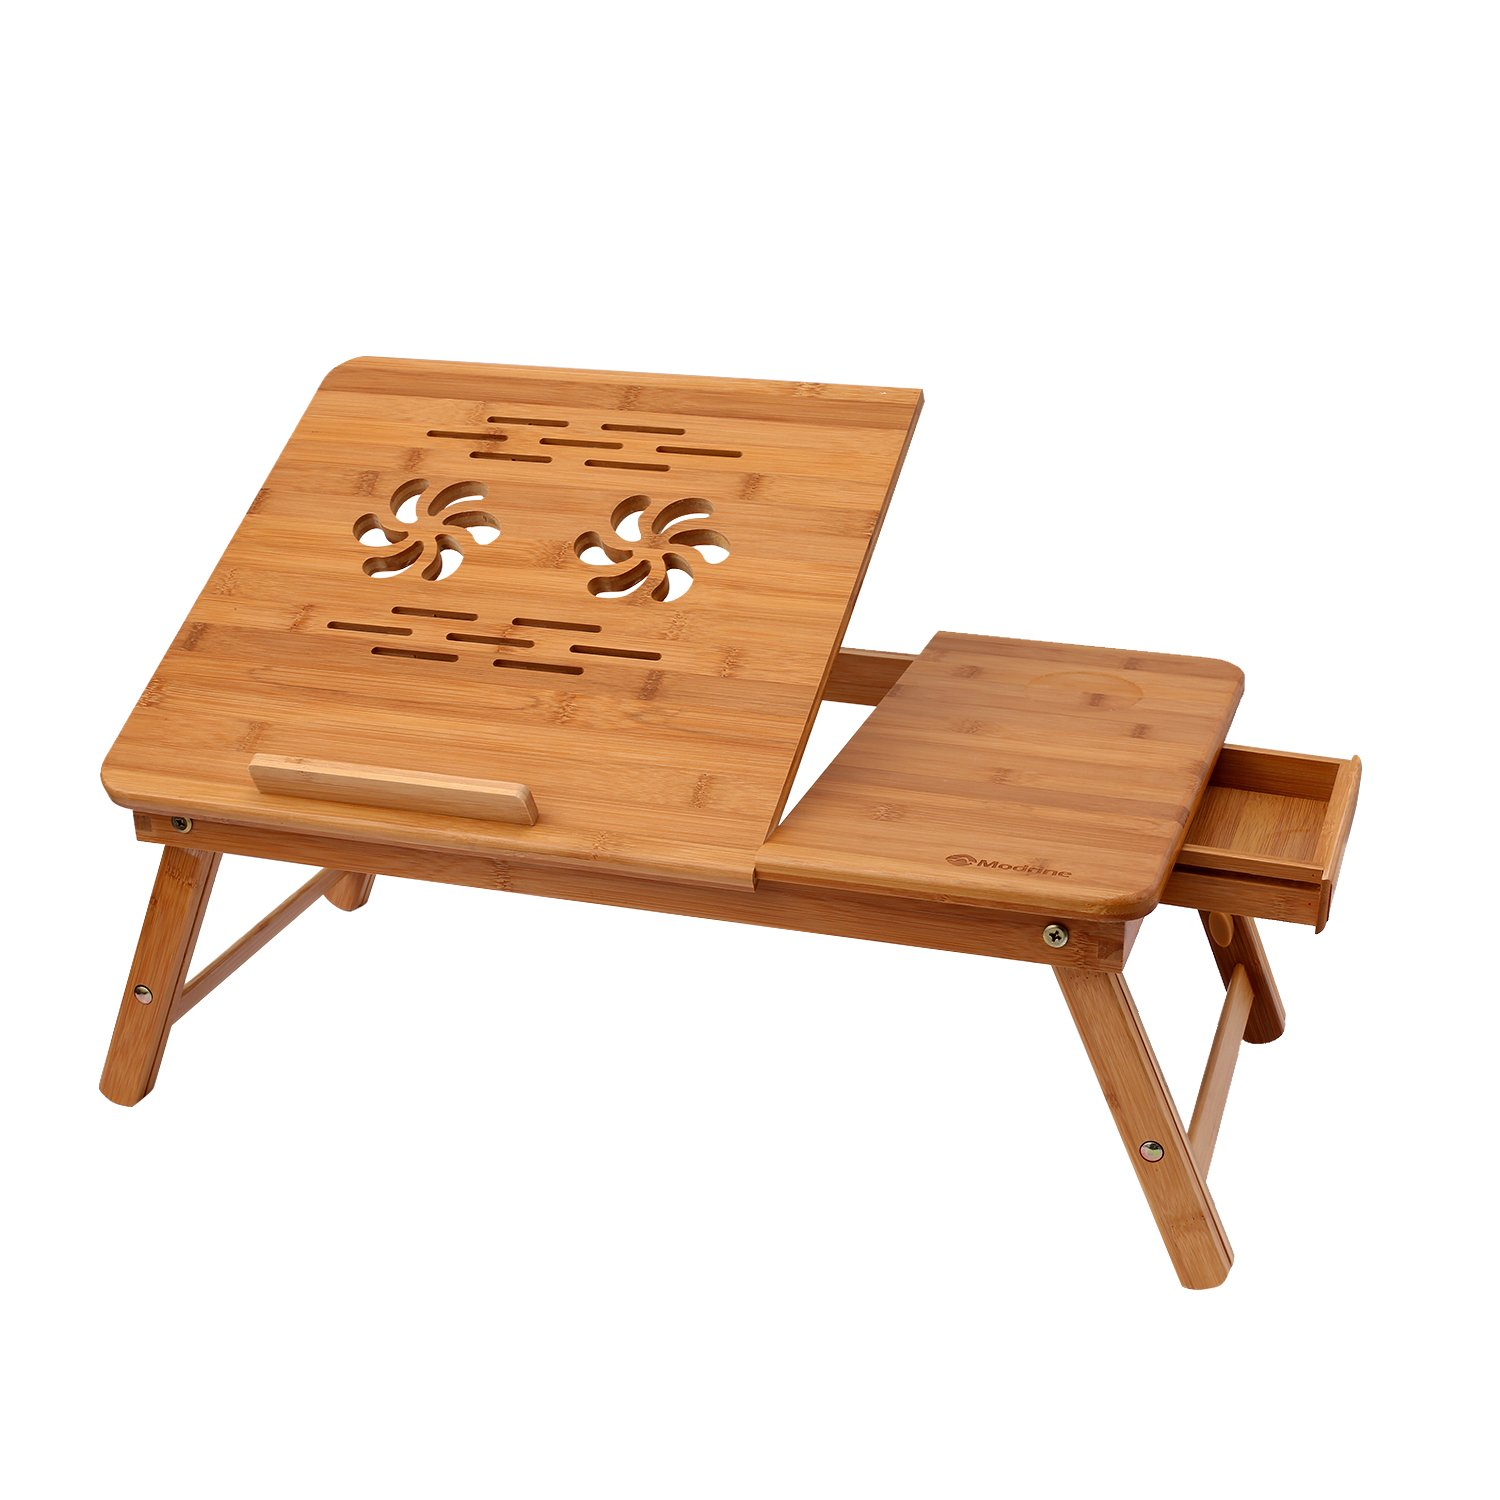 Modrine Bamboo Laptop Desk,Laptop Stand Adjustable Portable Breakfast Serving Bed Tray with Tilting Top Drawer & Cup Holder